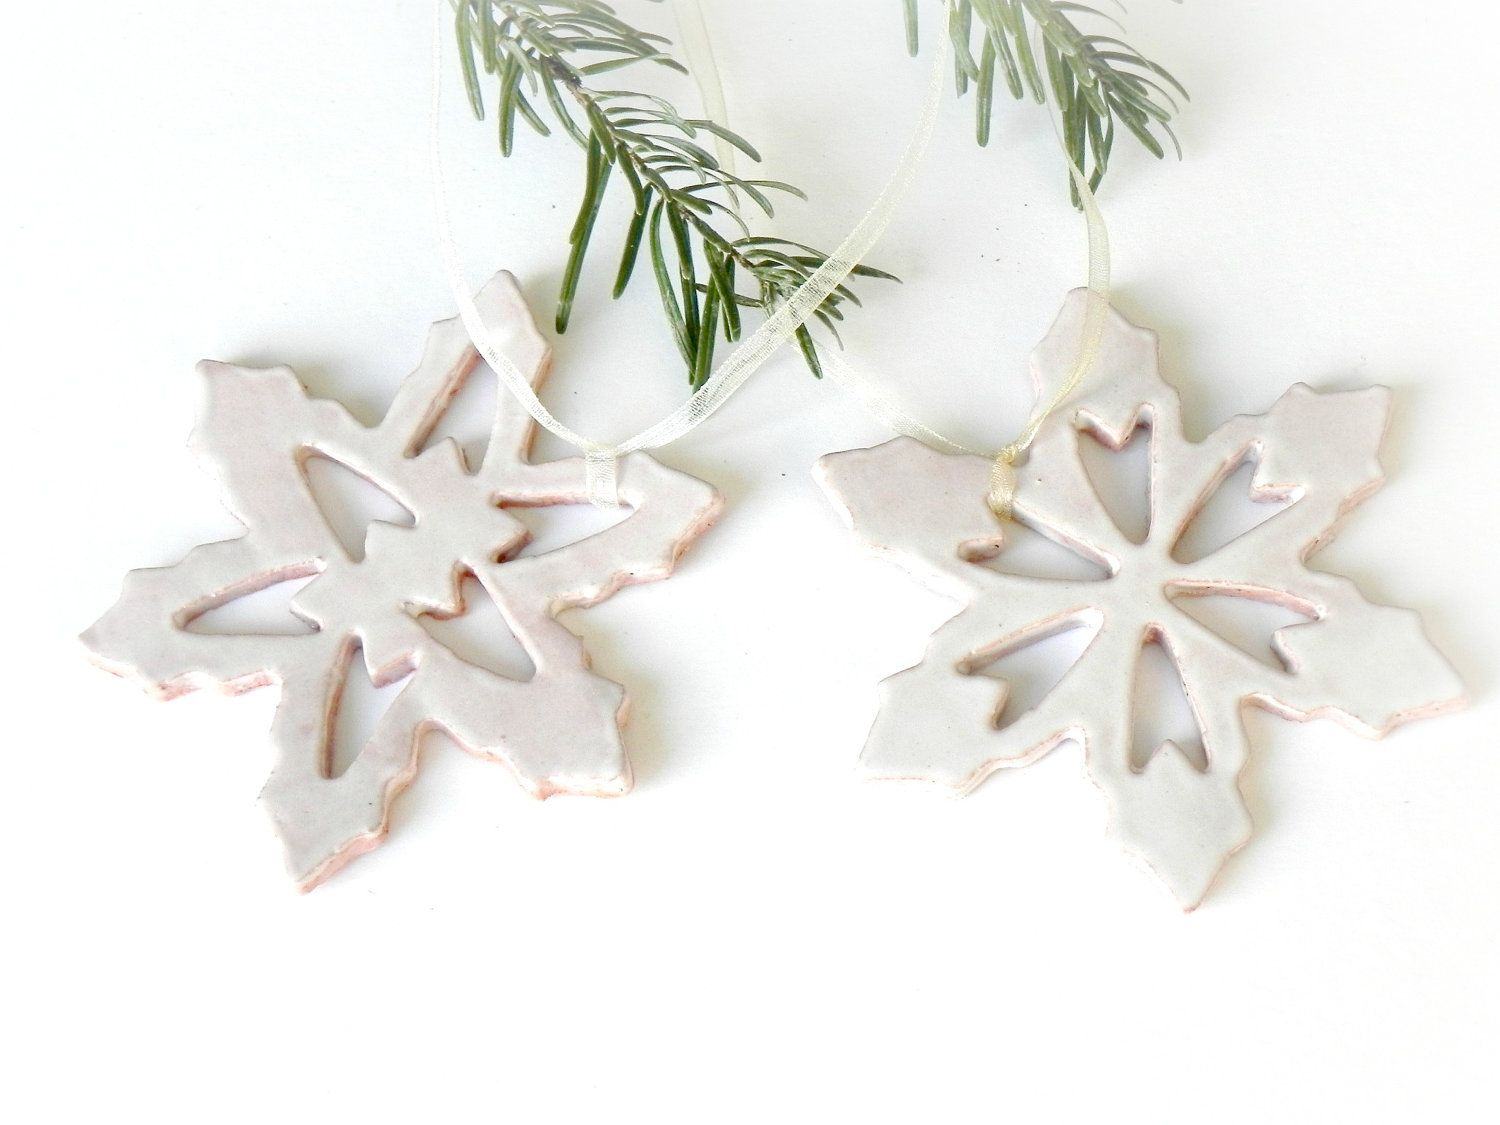 Snowflake Pottery Rustic Decoration White Eco Friendly Ceramic Ornament Set of 2 Wedding Gift, via Etsy.